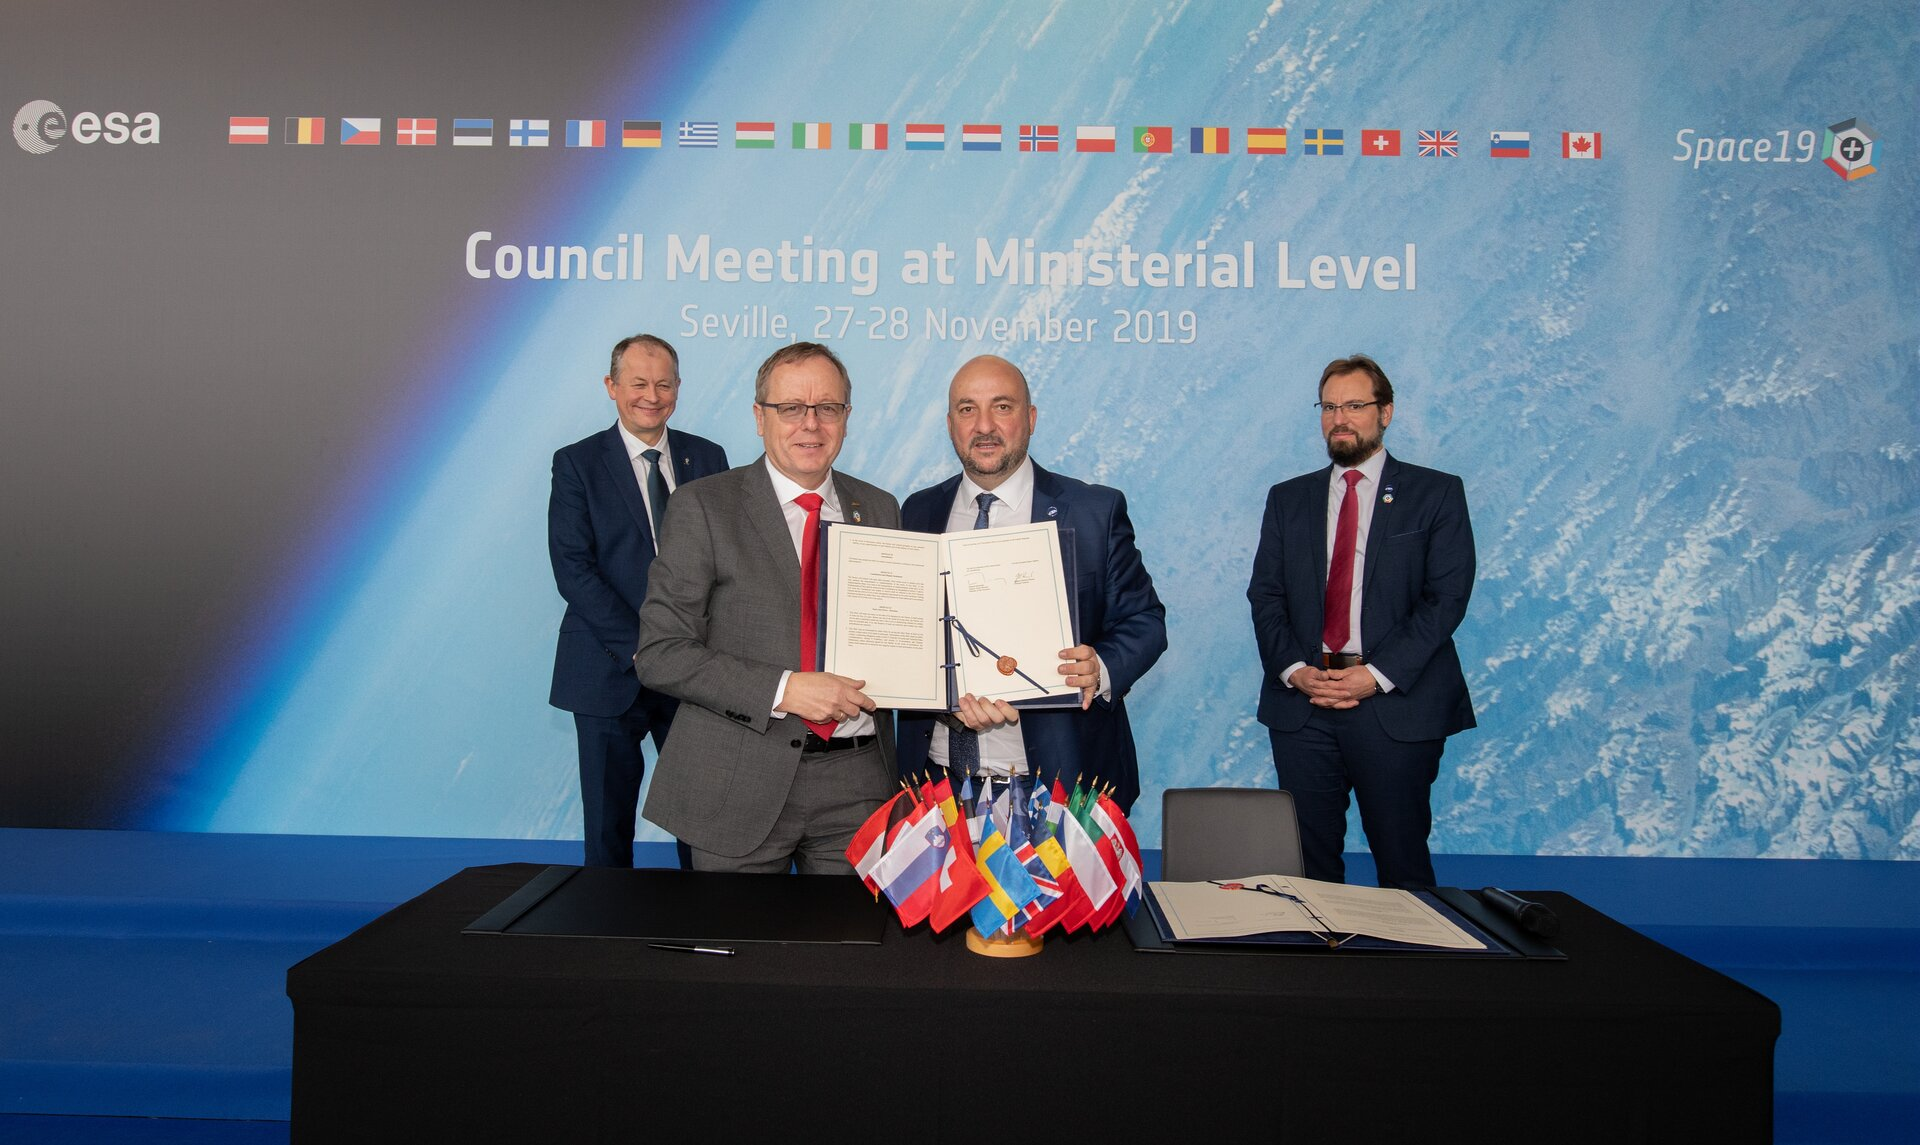 Signing of Memorandum of Cooperation with Luxembourg on space resources